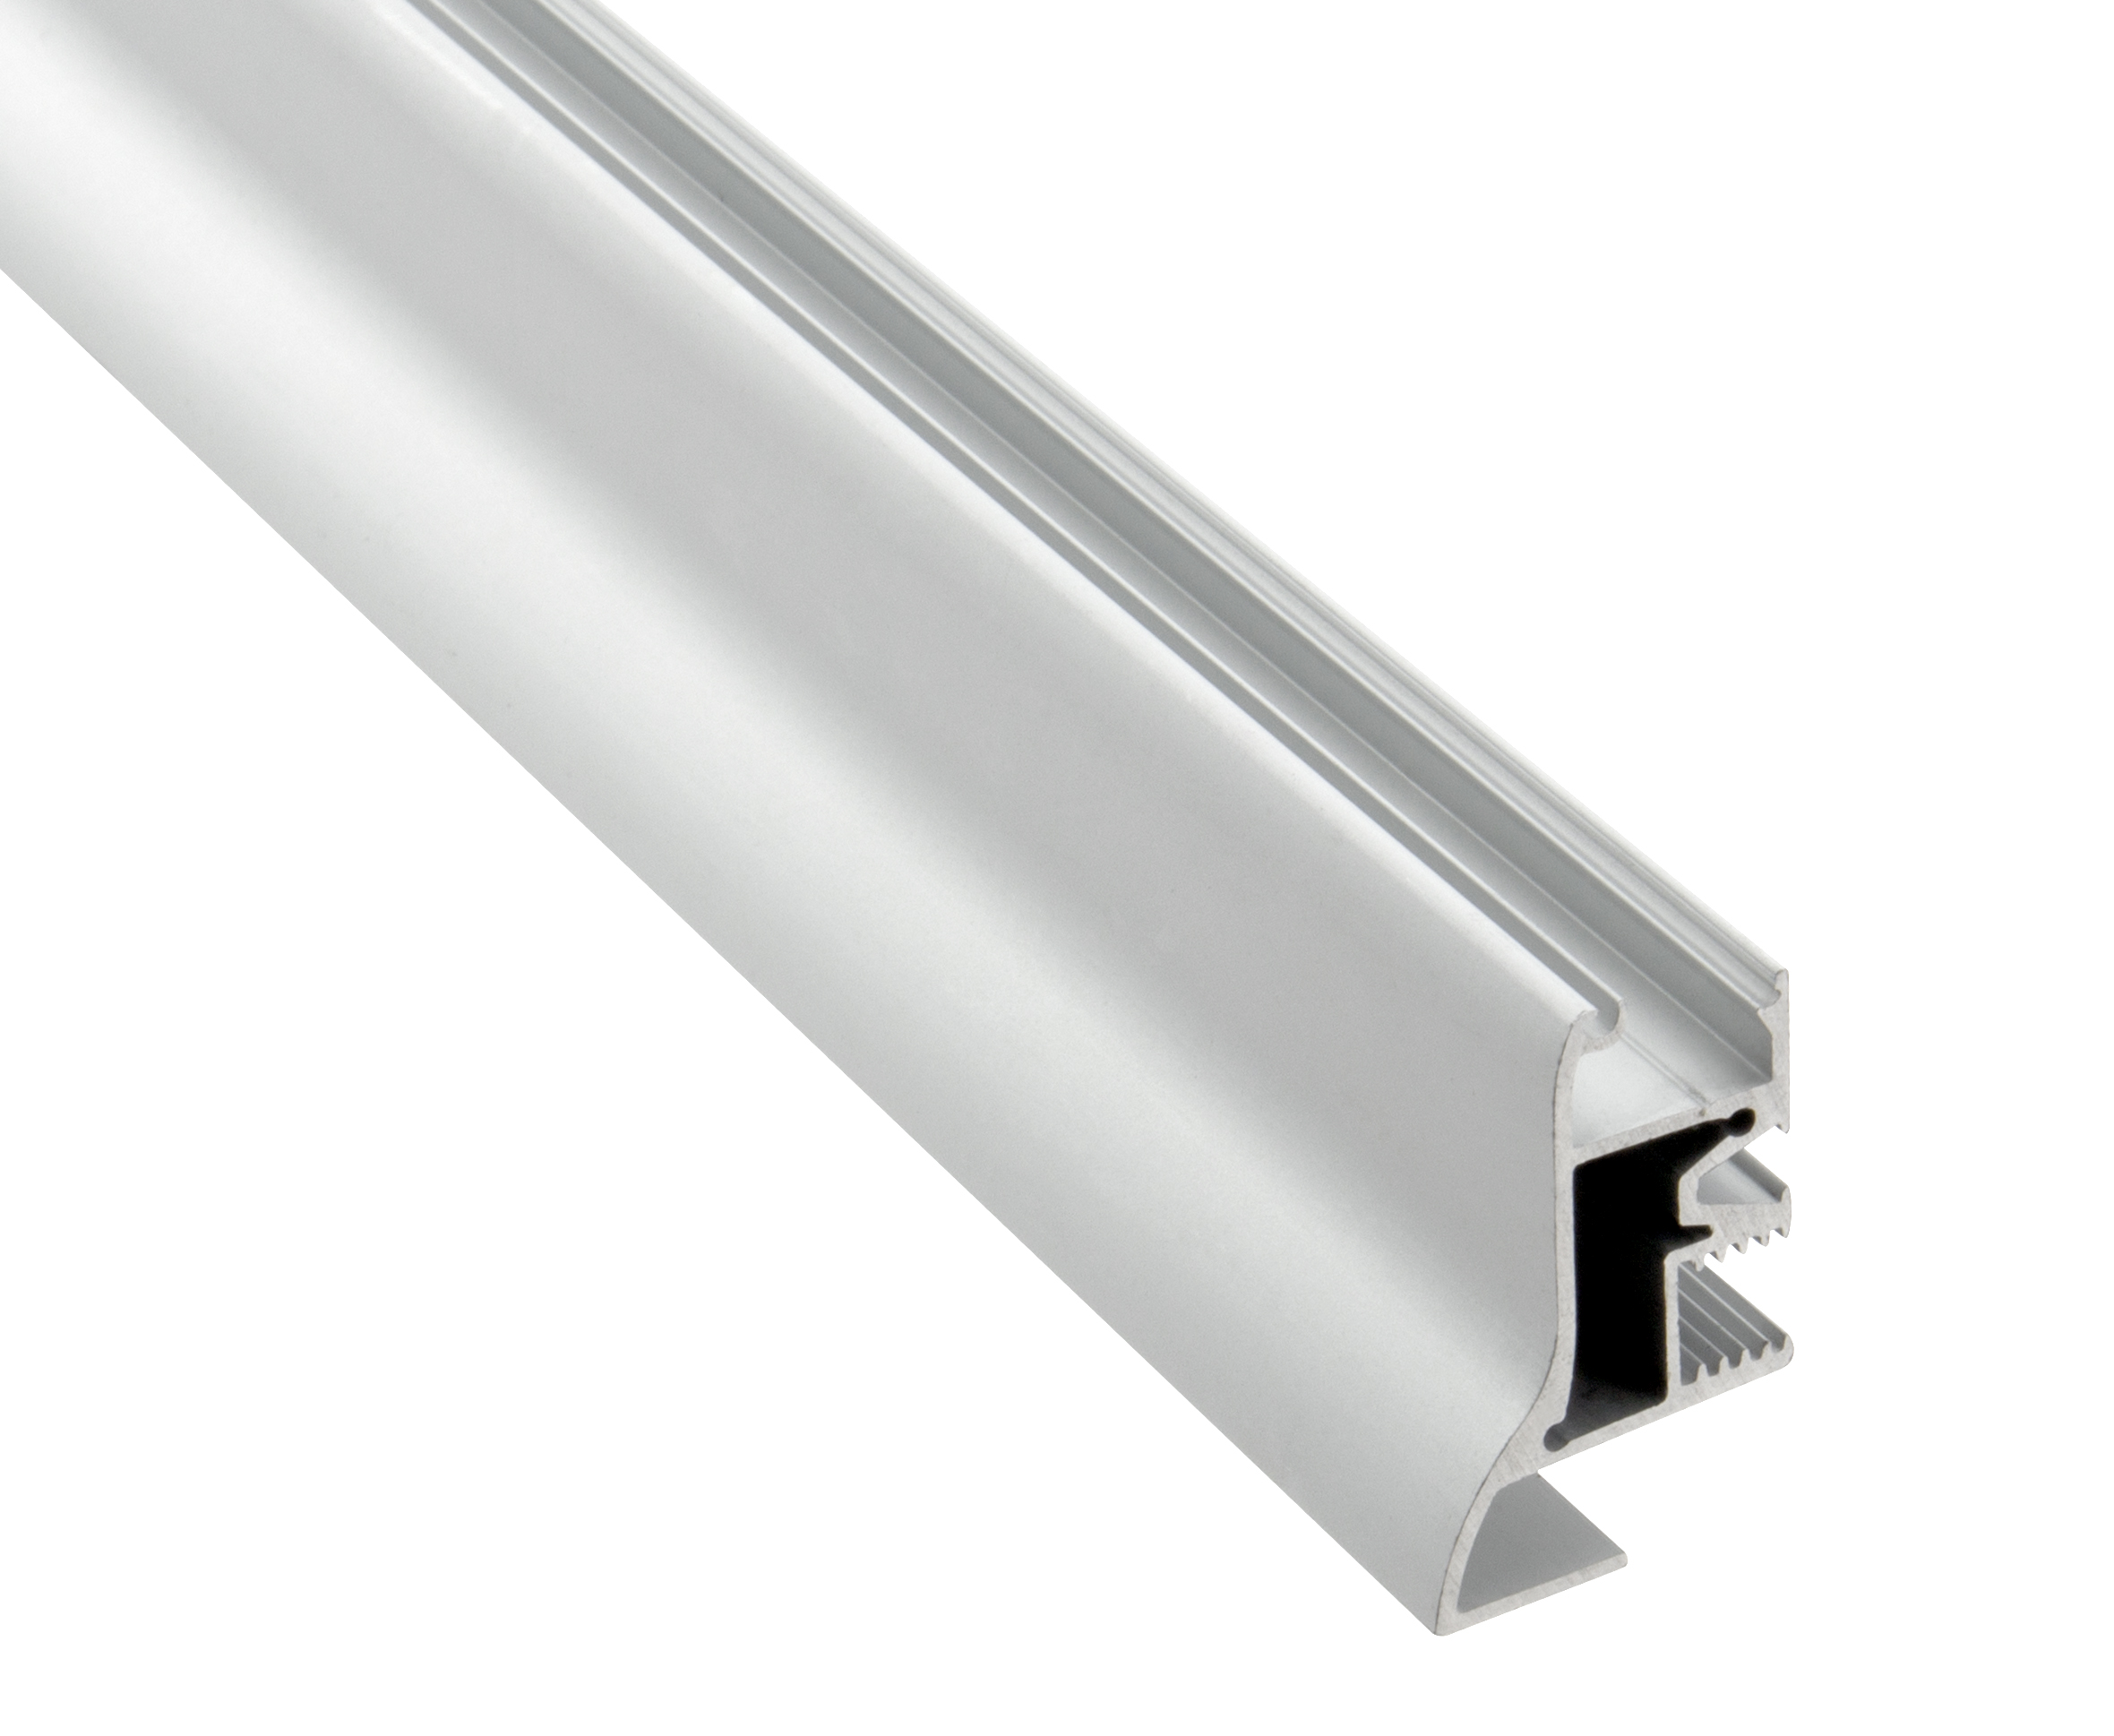 Dp02 Skirting Board Led Linear Light Tobiled Co Limited Wiring